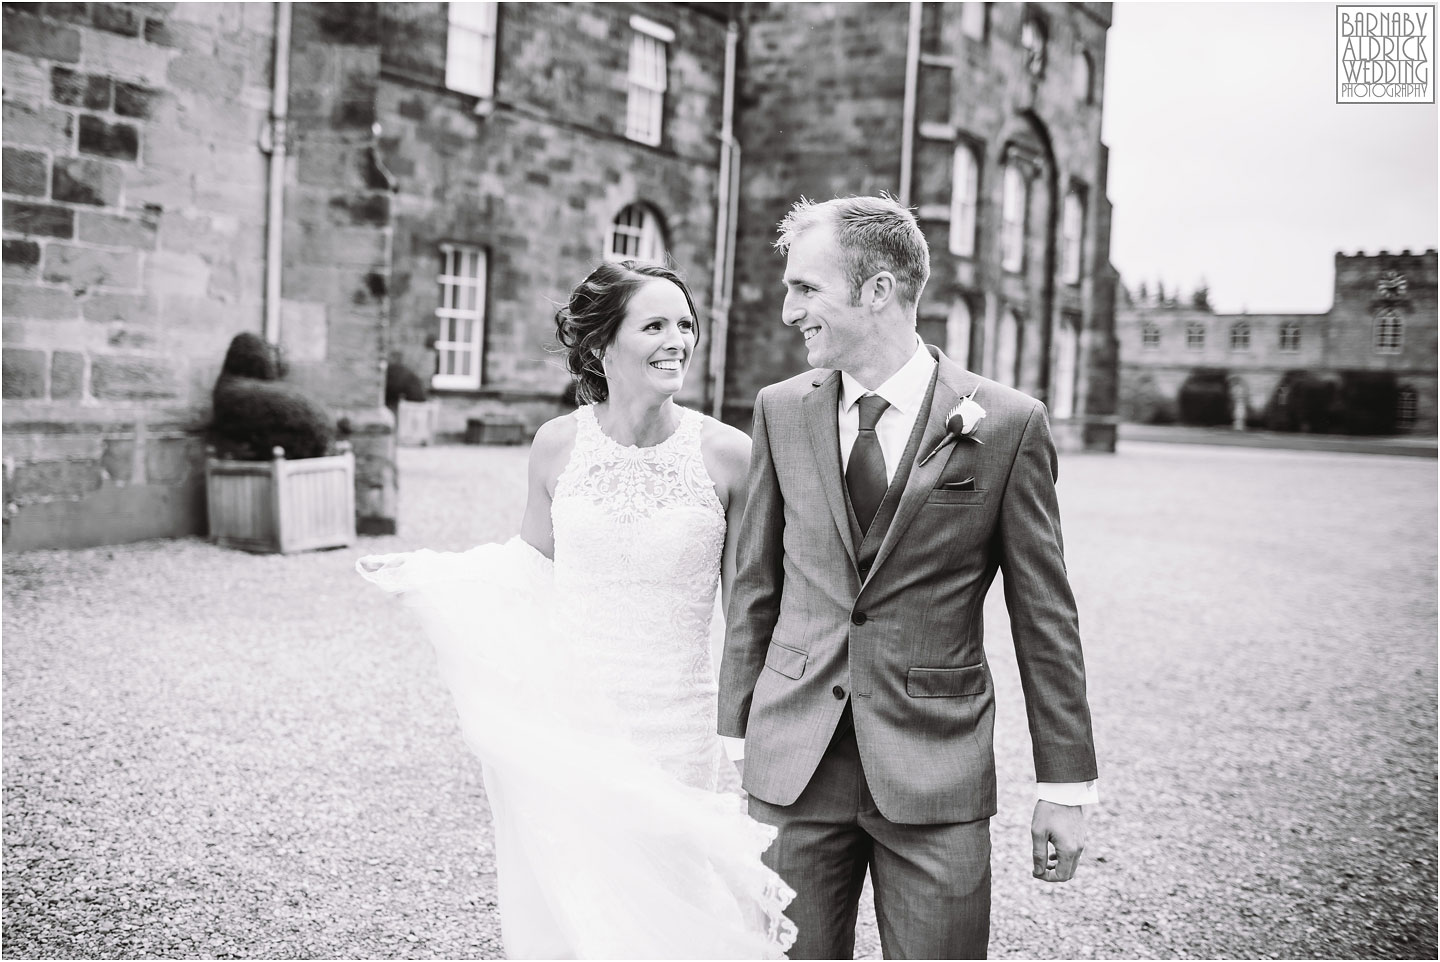 Ripley Castle Wedding Photographer, Ripley Castle Photography, Ripley Castle Yorkshire Wedding, Ripley Castle Autumn Wedding, Yorkshire Wedding Venues